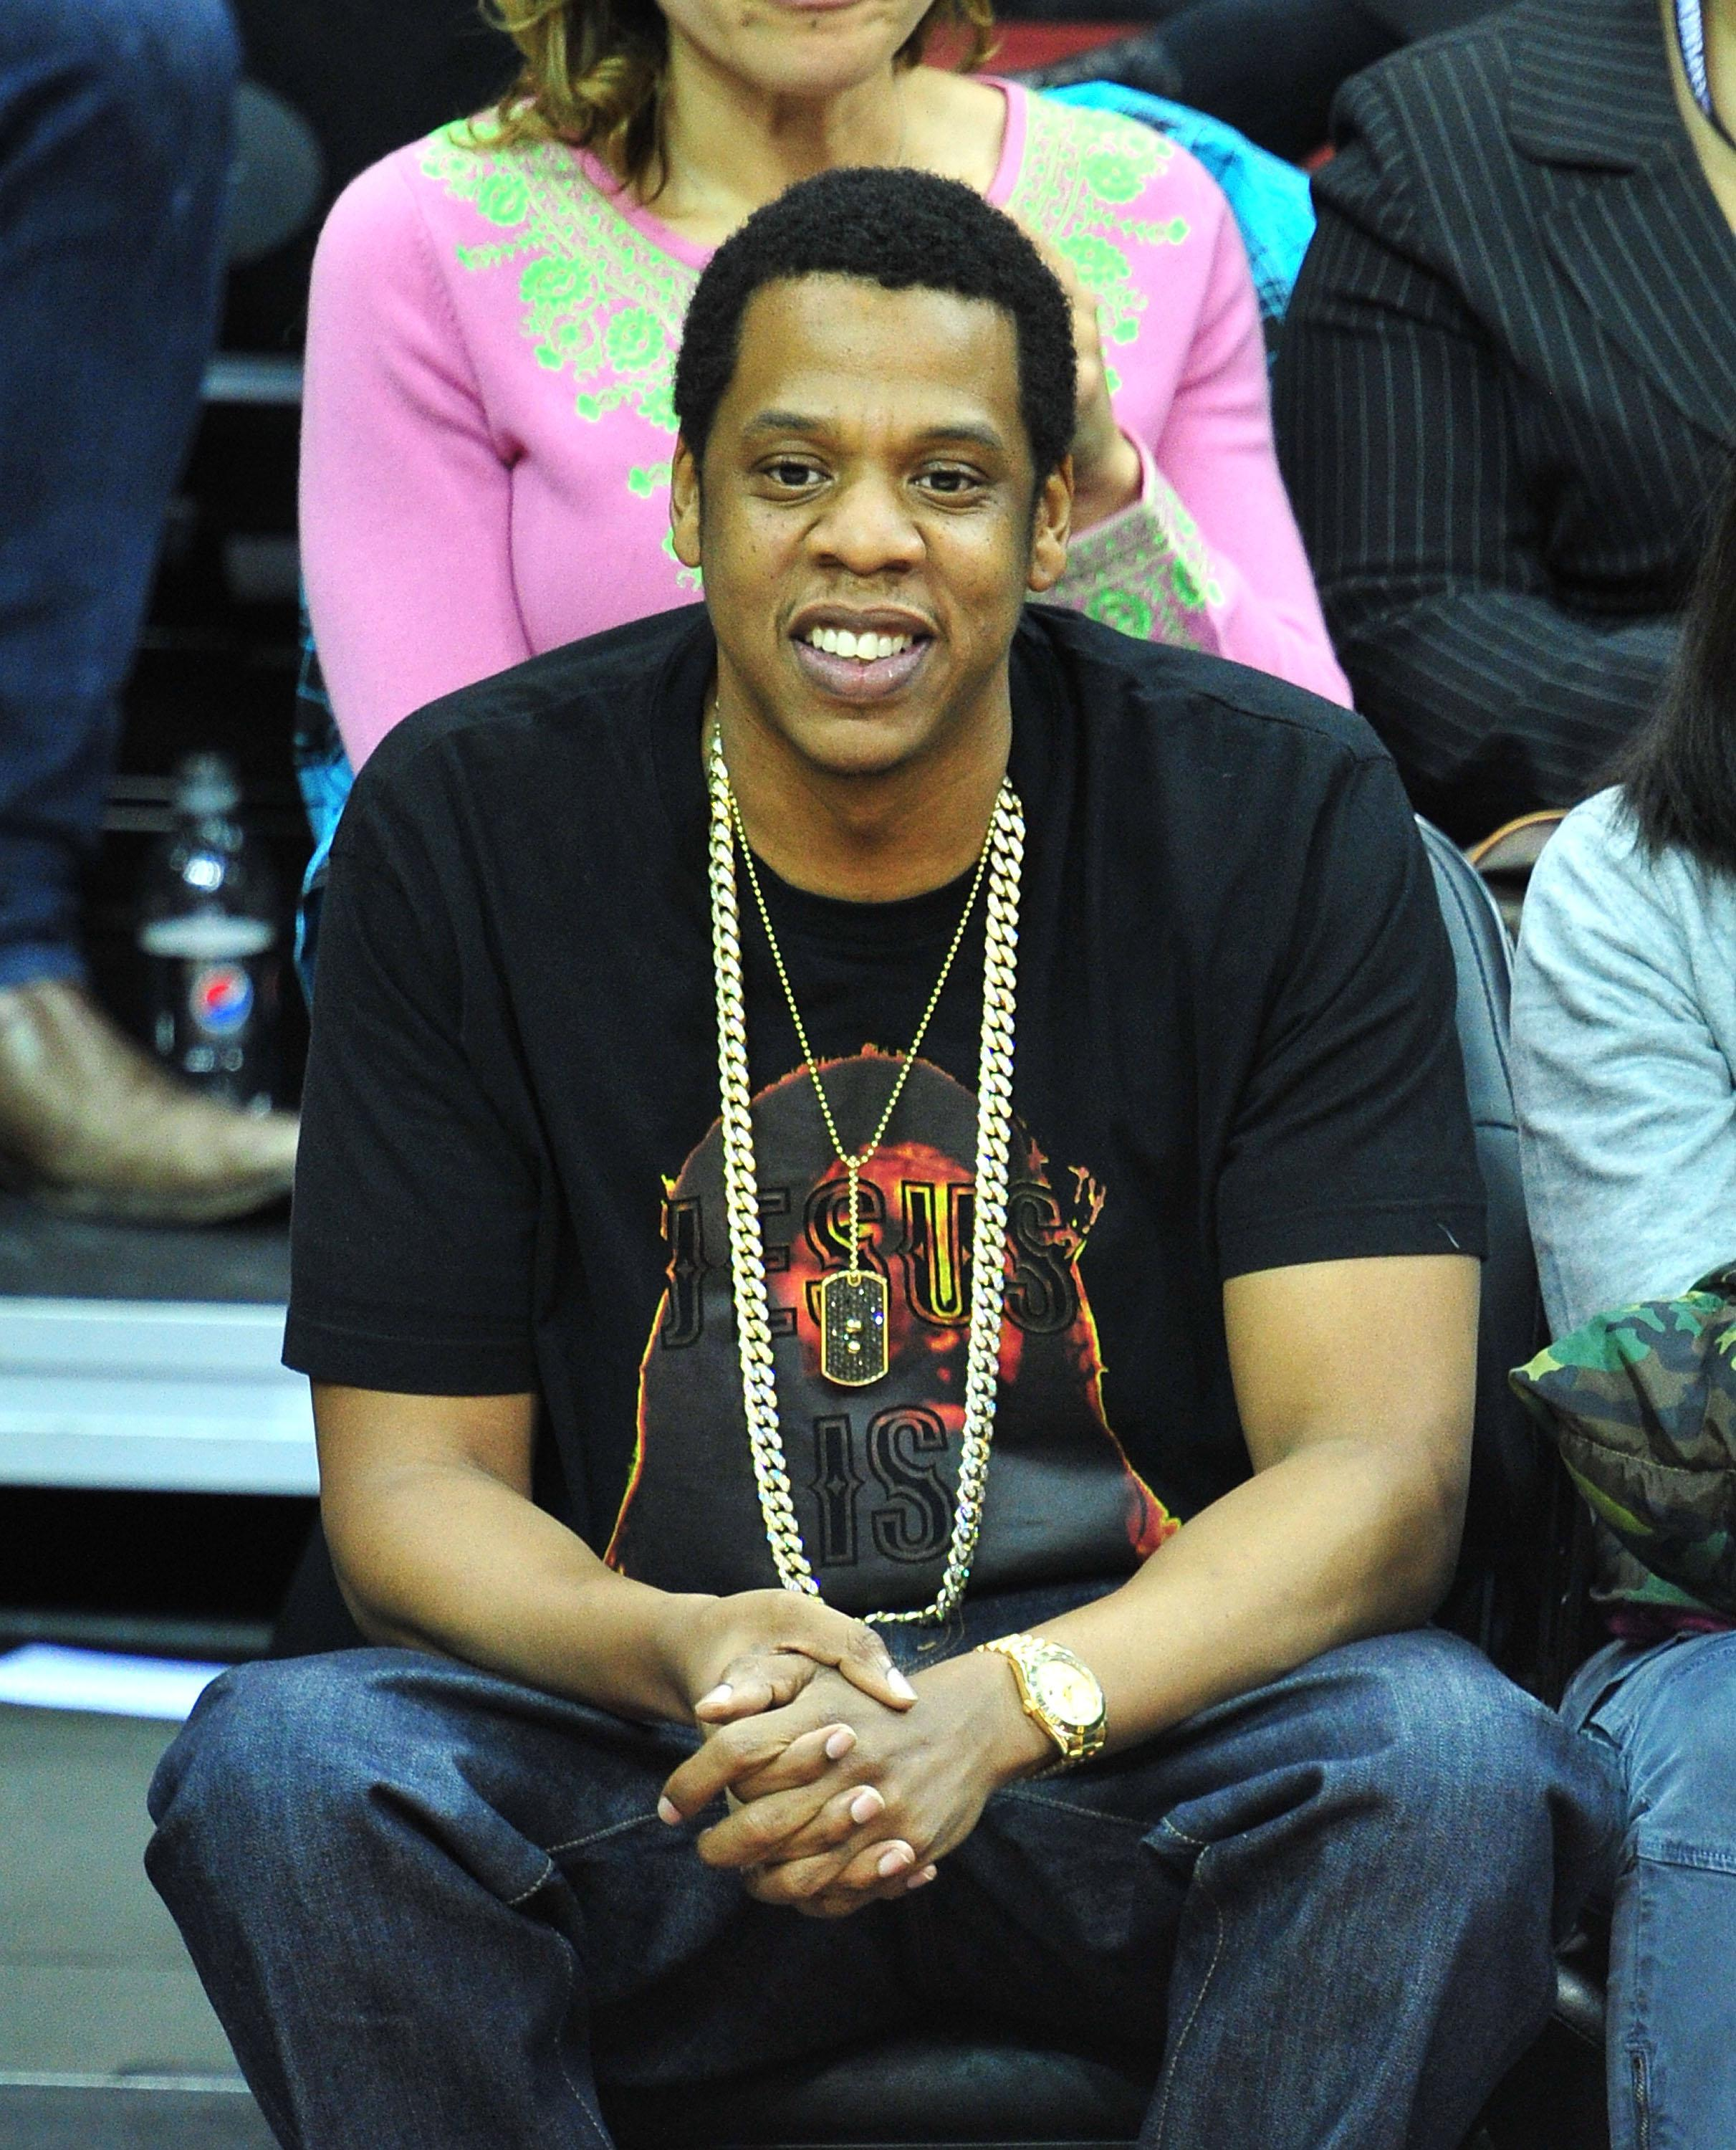 Celebrities Attend The Los Angeles Clippers Vs New Jersey Nets Game - March 11, 2011